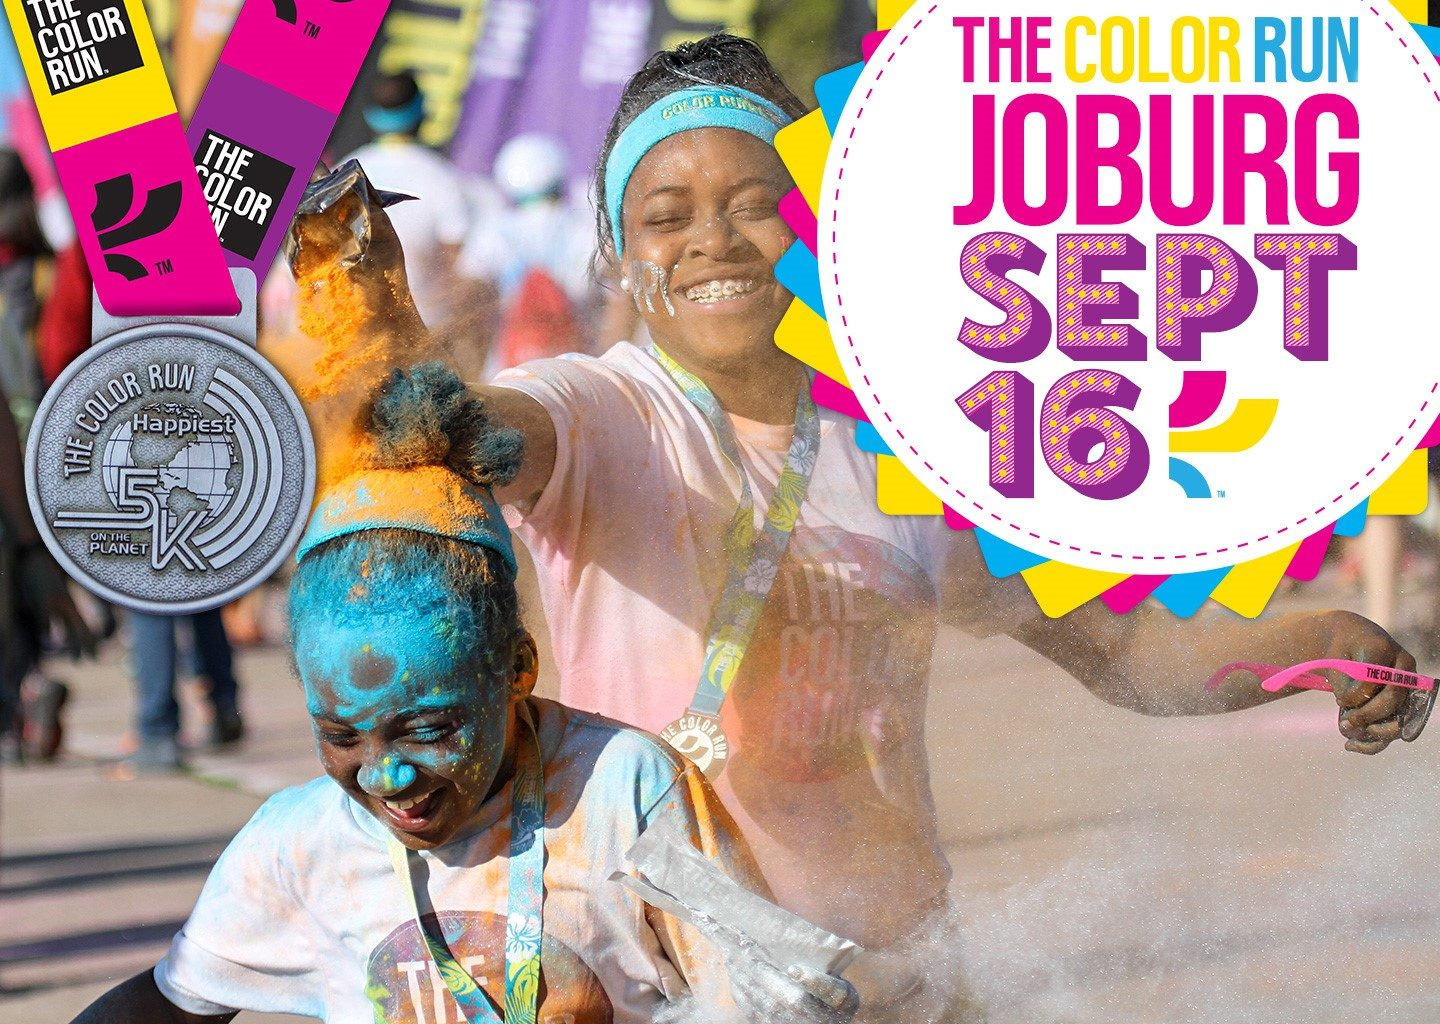 Enter to WIN 2 Adult + 2 Kids tickets and a selection of goodies for the @TheColorRunSA in Johannesburg!